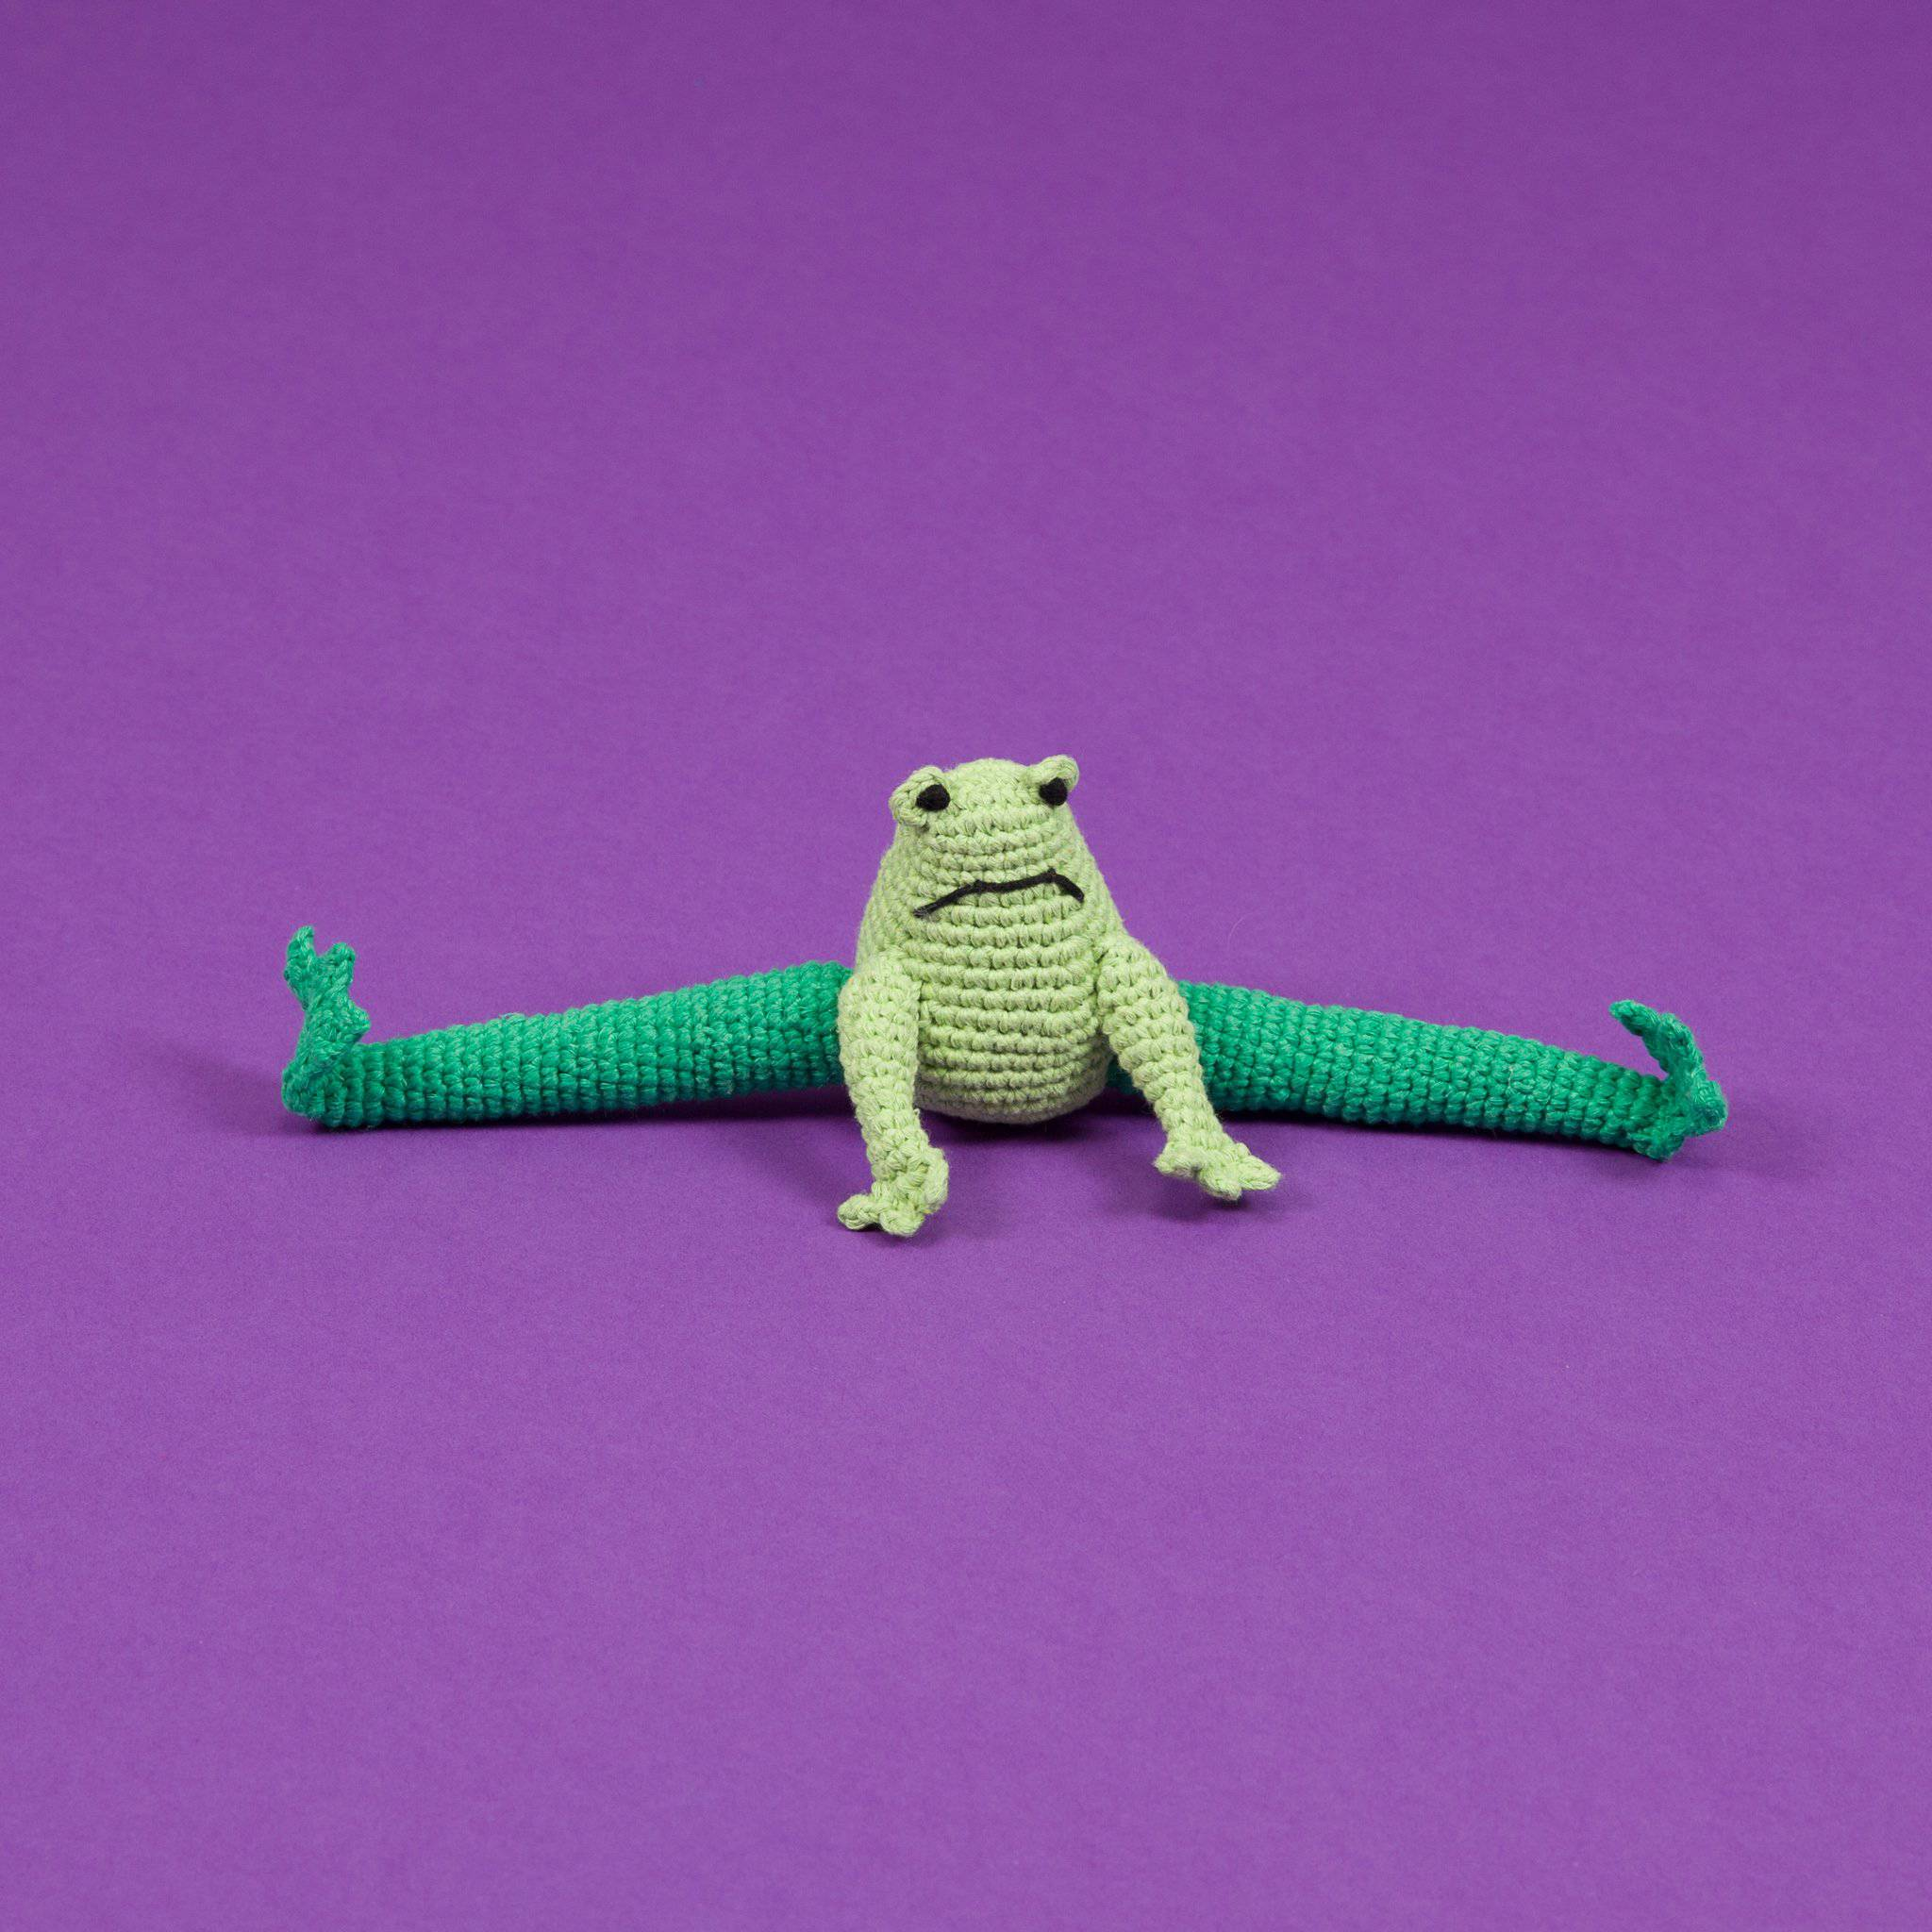 Frog - Crochet Toy - Holler Brighton